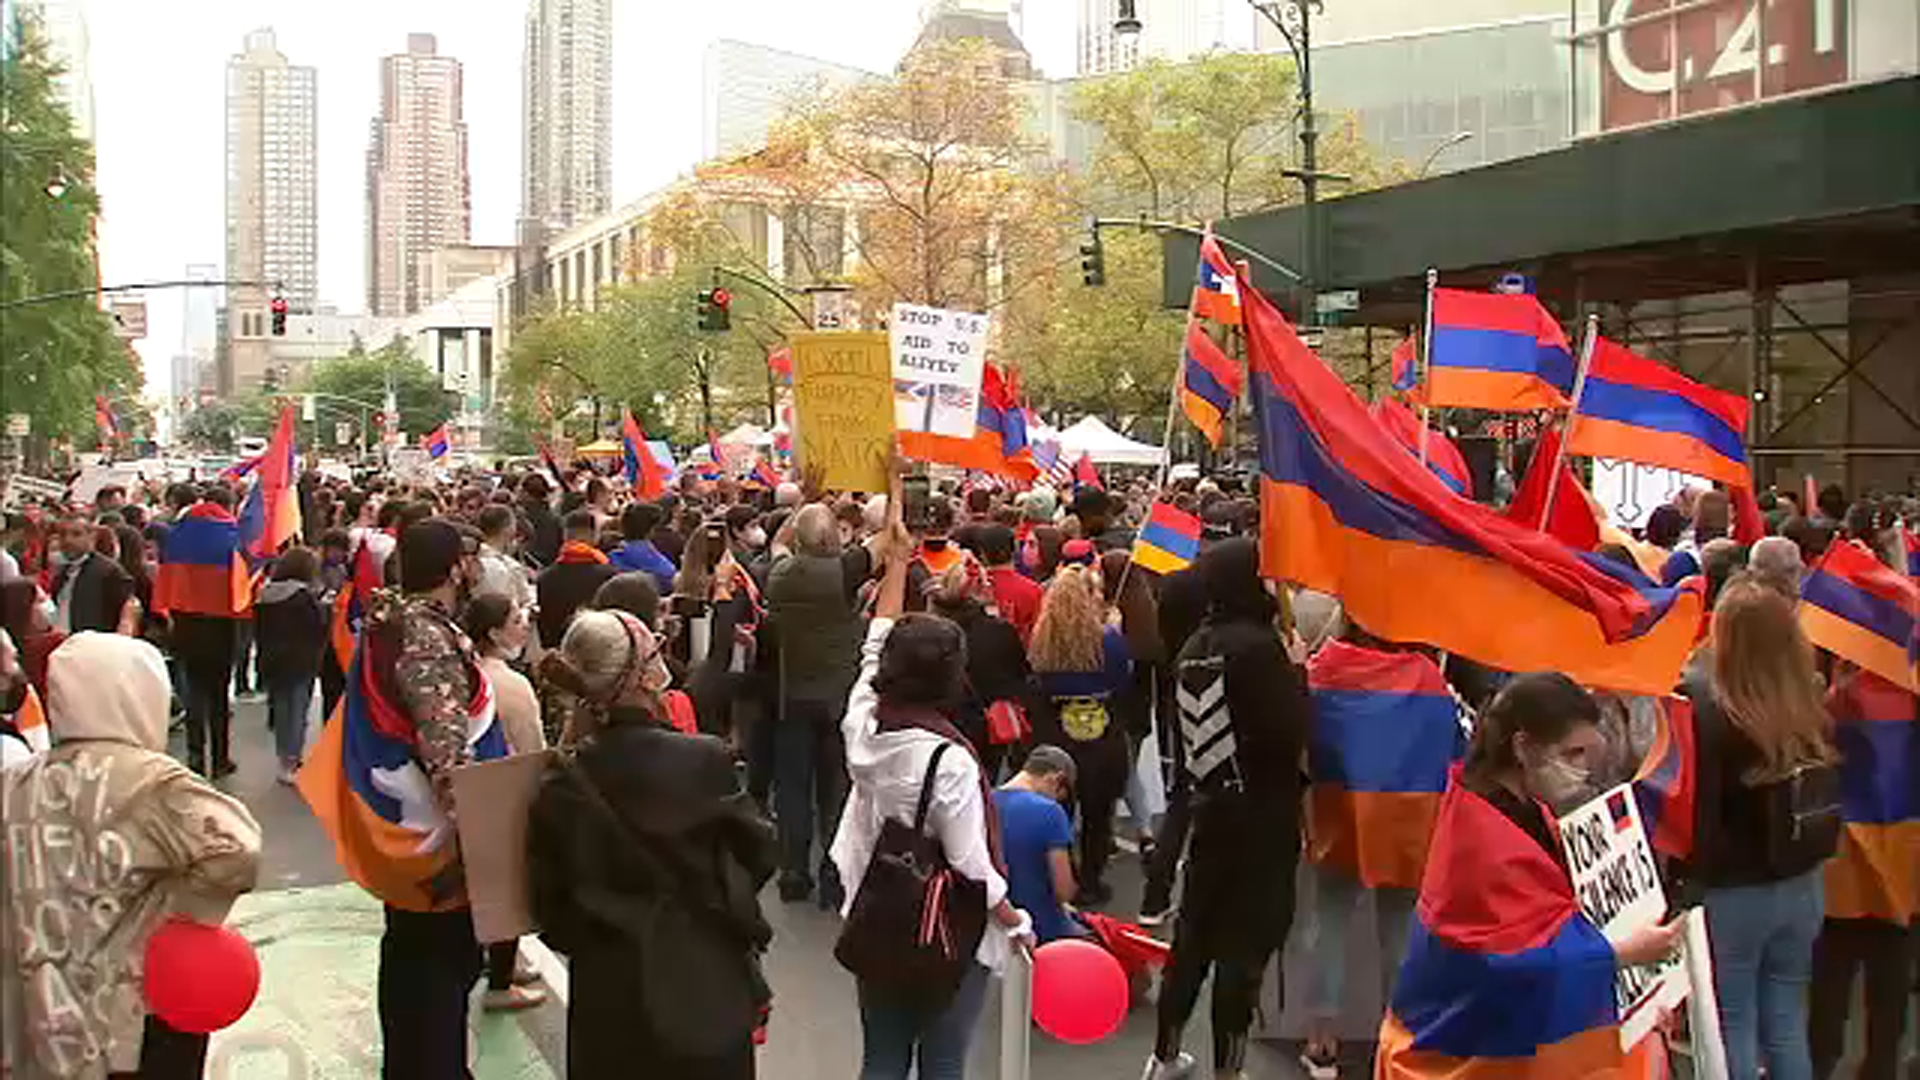 Demonstrators block New York City street, call for aid for Armenia in  conflict with Azerbaijan - ABC7 New York